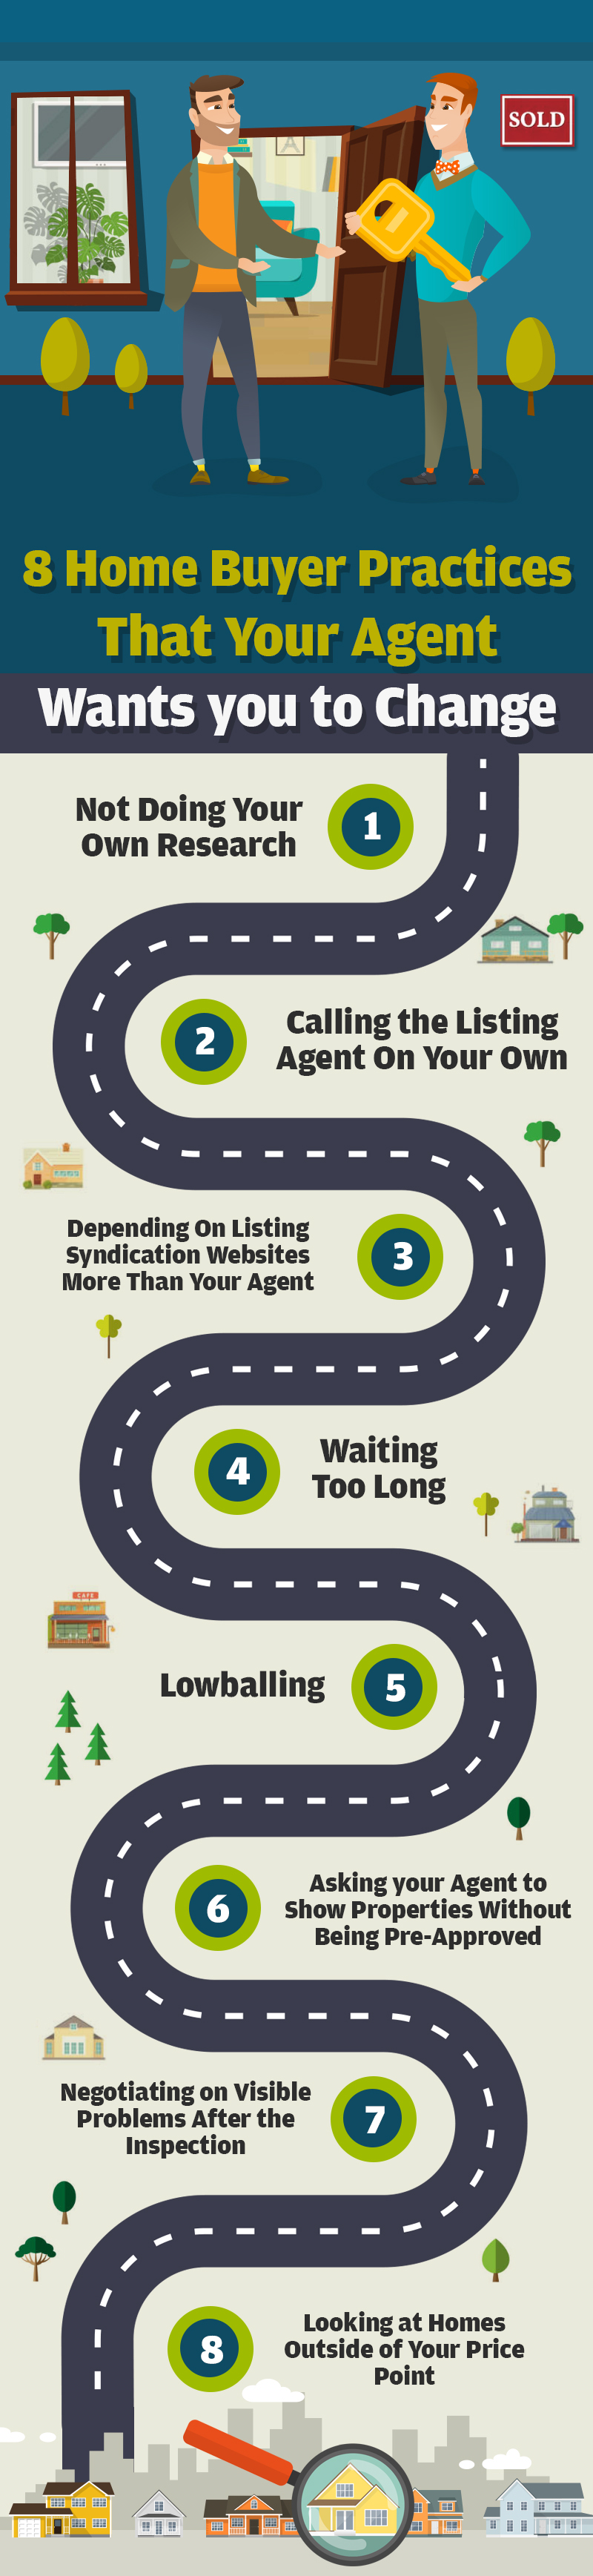 8 Home Buyer Practices That Your Agent Wants you to Change